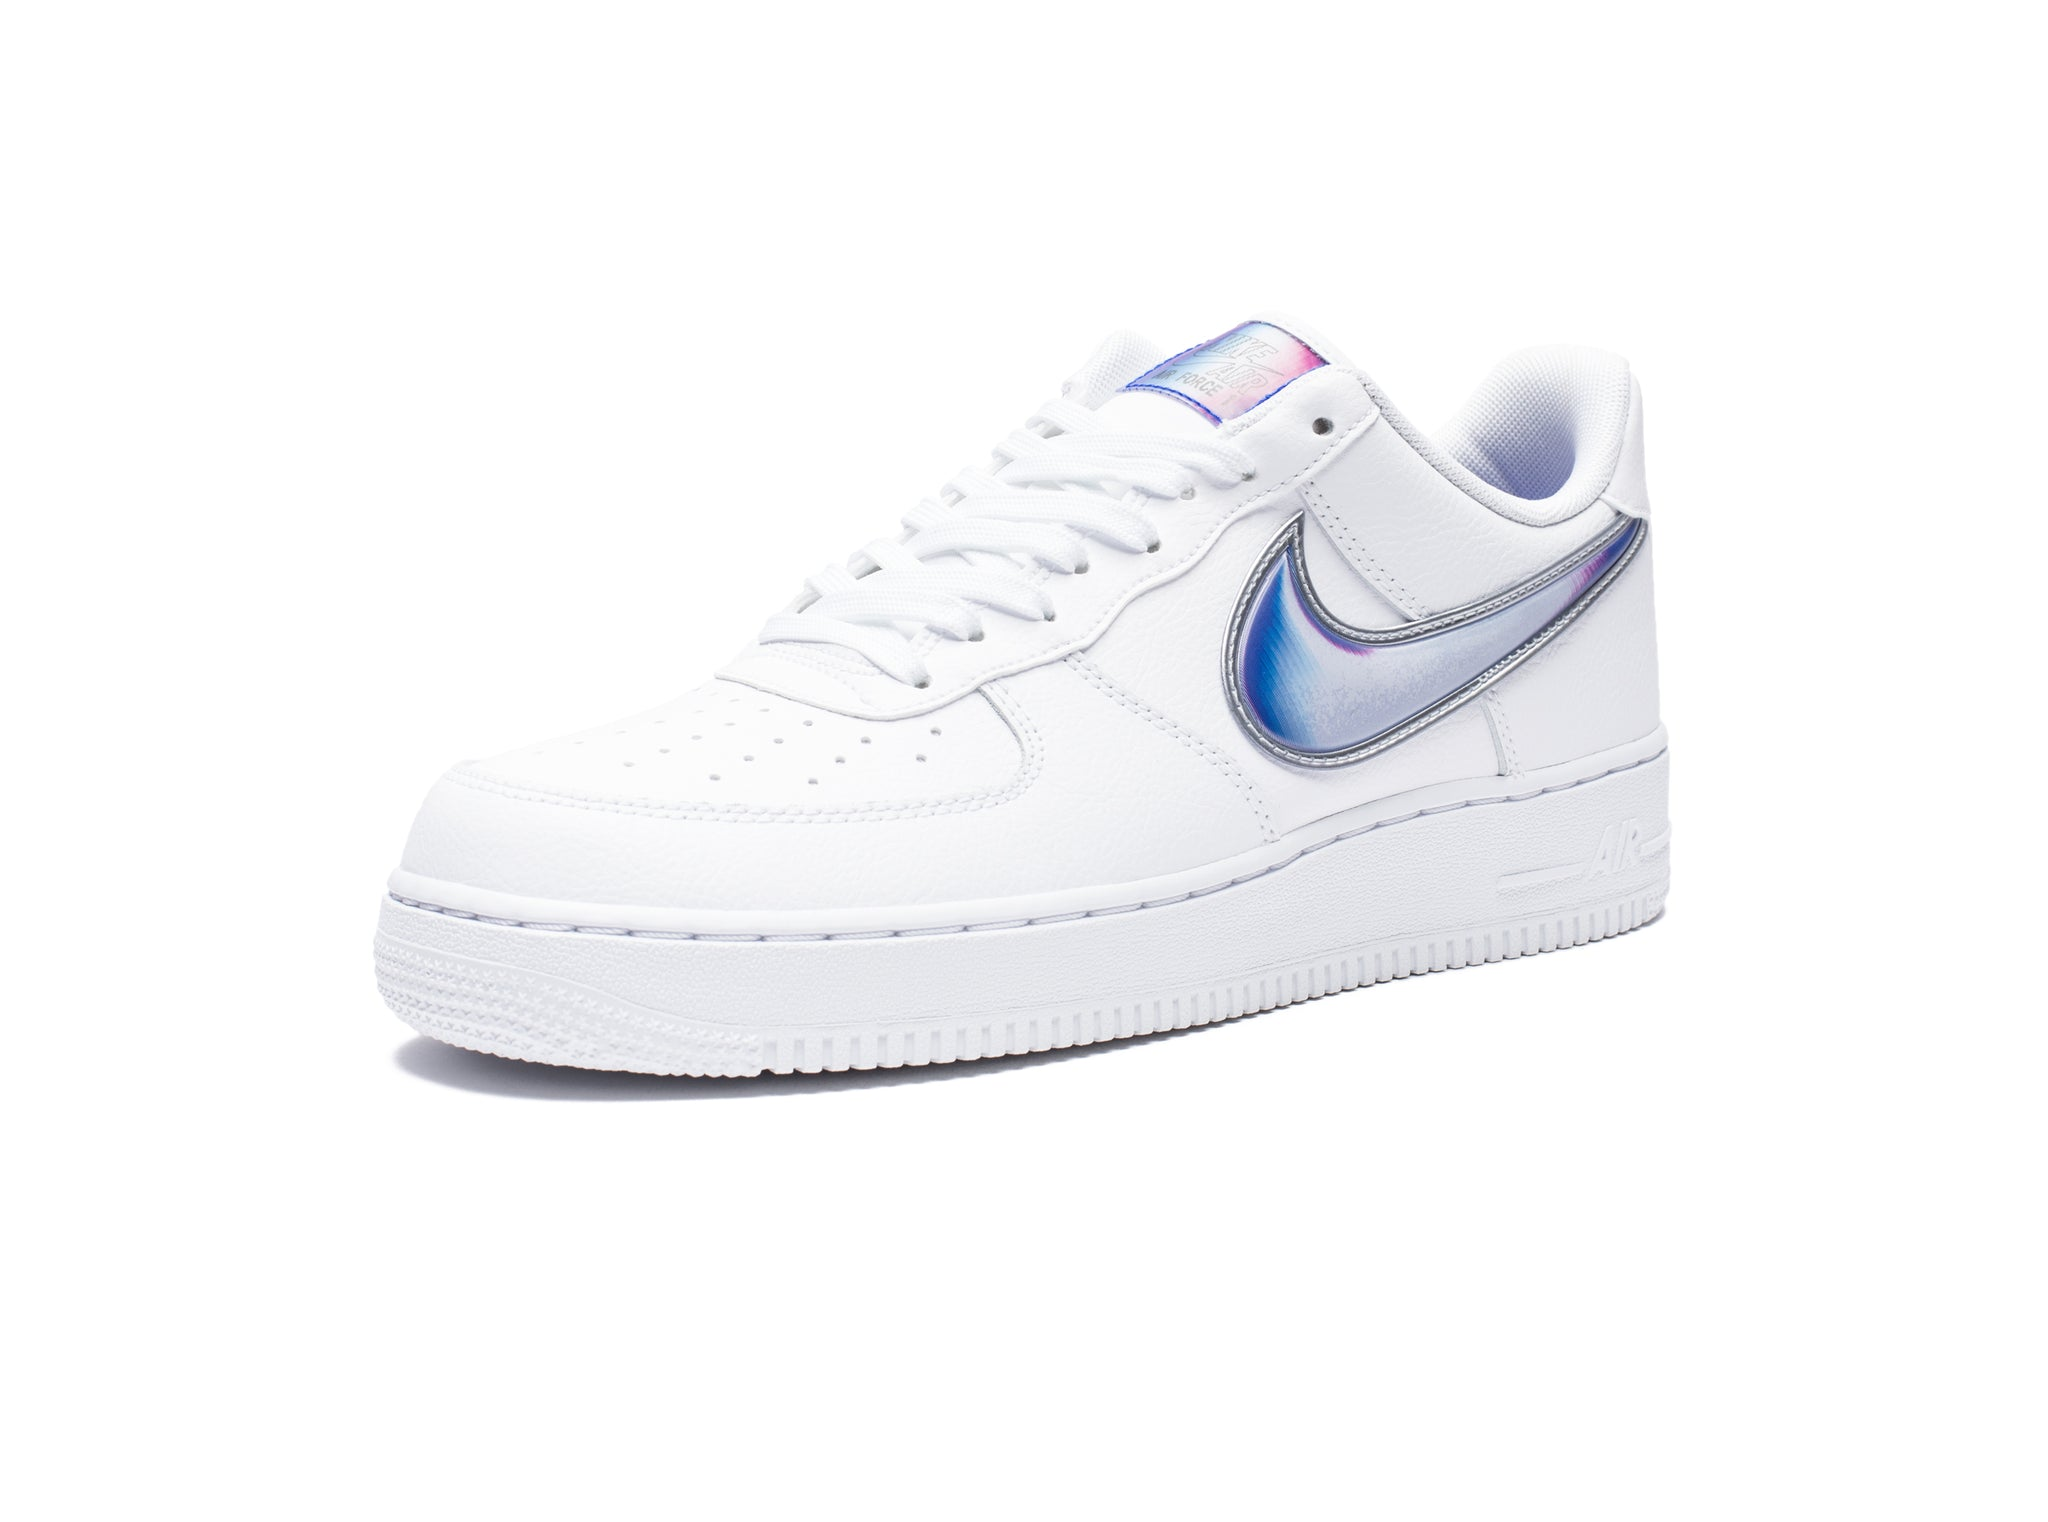 AIR FORCE 1 '07 LV8 3 - WHITE/RACERBLUE